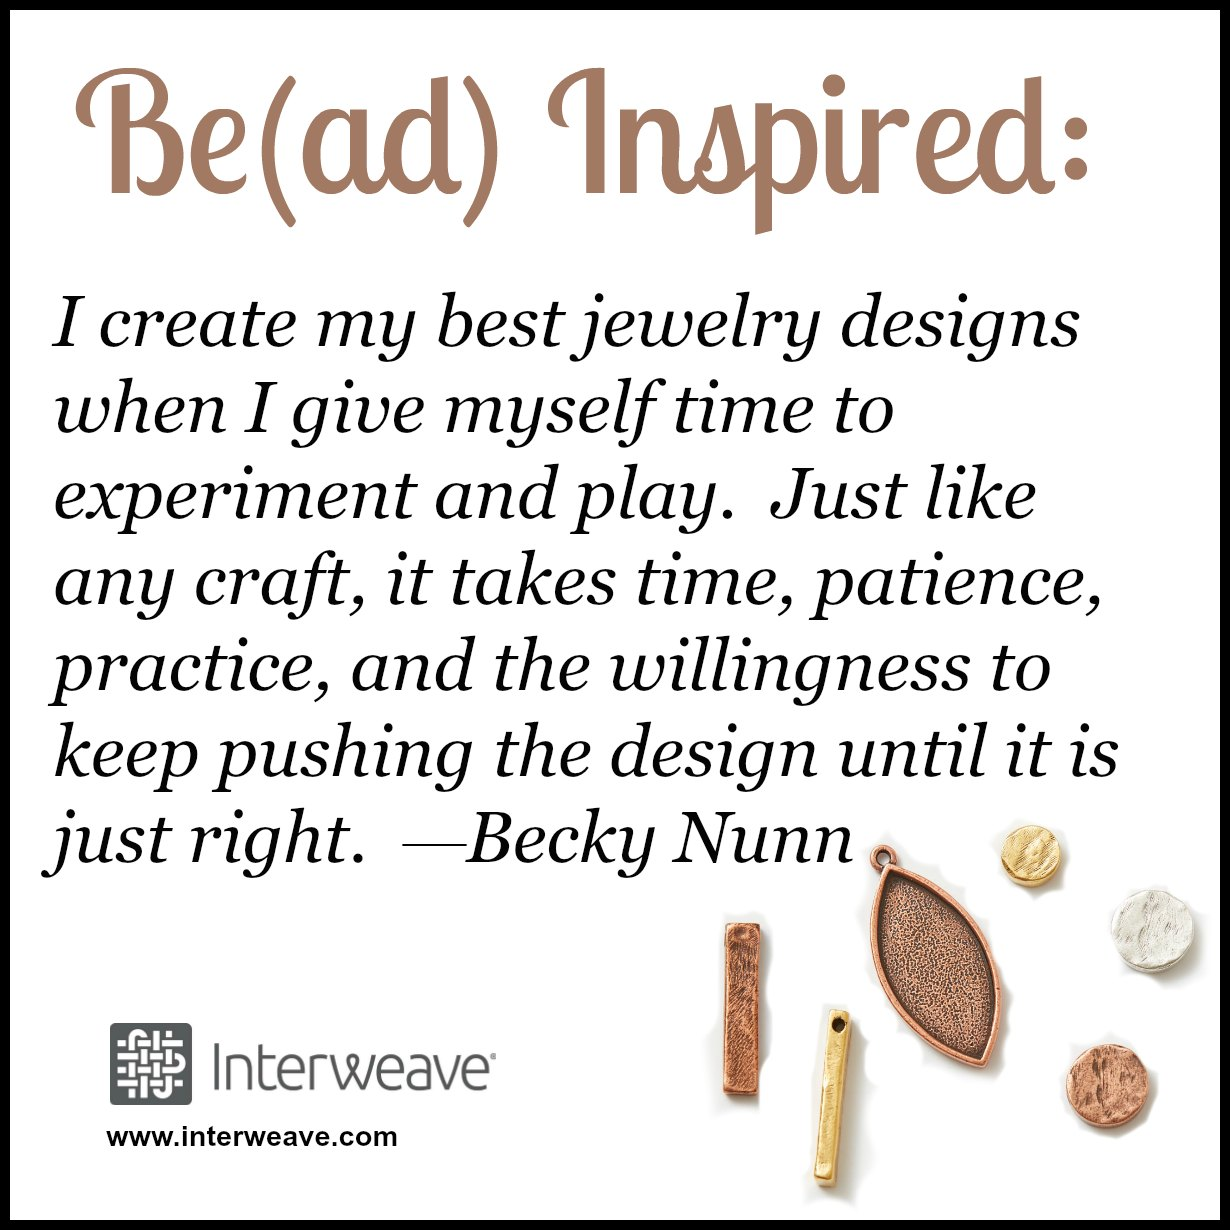 I create my best jewelry designs when I give myself time to experiment and play.  Just like any craft, it takes time, patience, practice, and the willingness to keep pushing the design until it is just right.